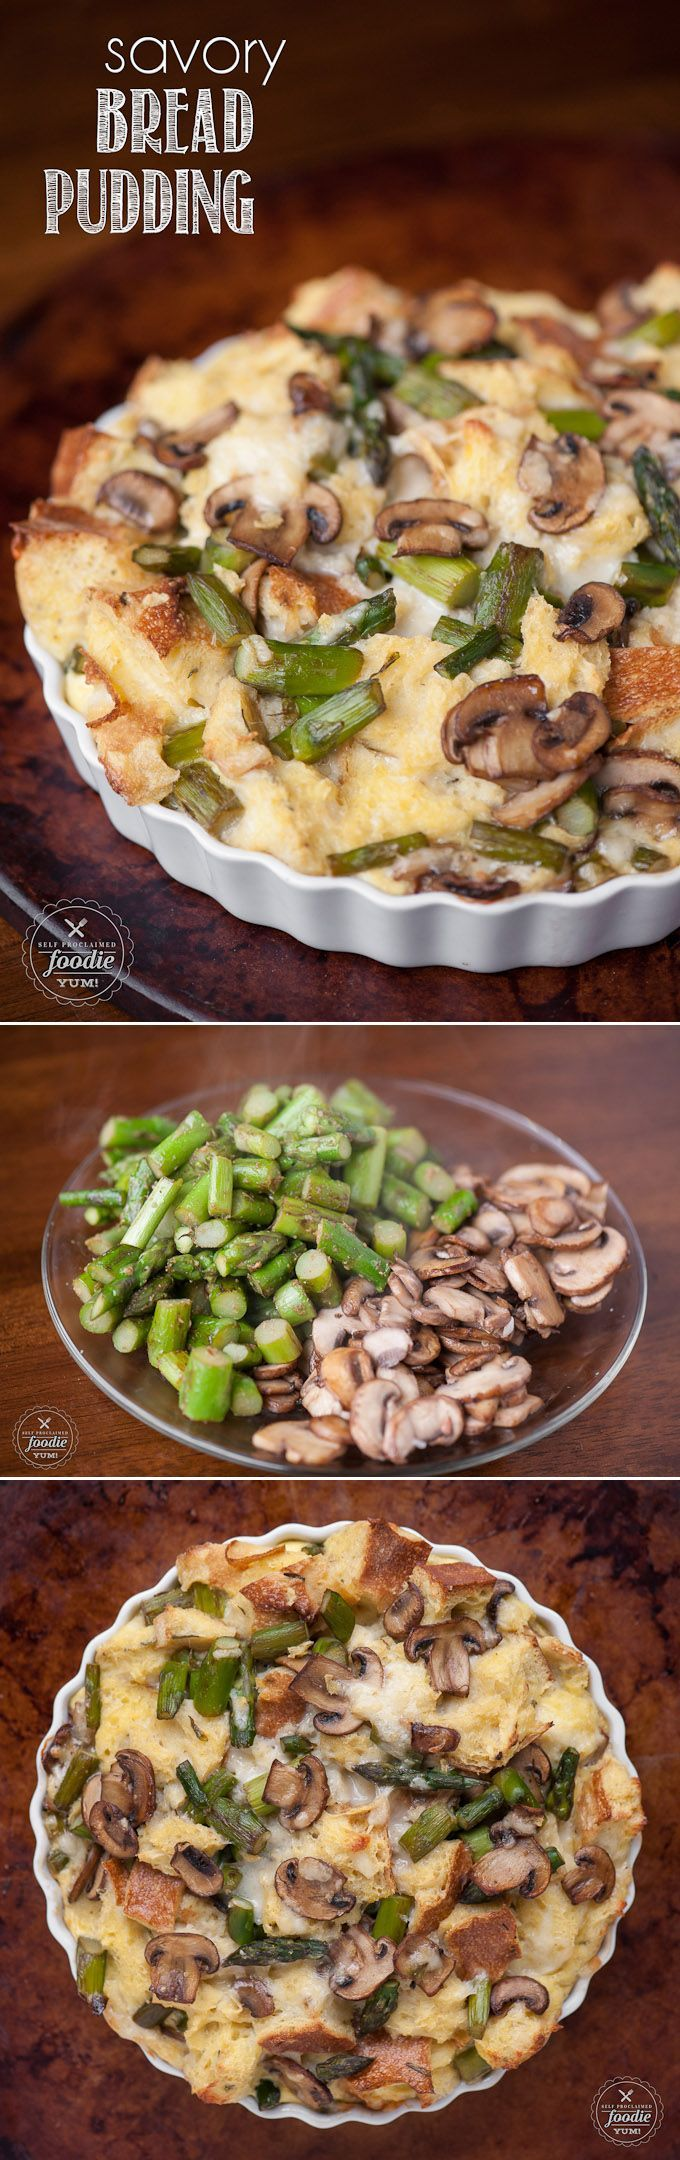 This Savory Bread Pudding with mushrooms, asparagus, and your favorite cheese is a delicious make ahead breakfast perfect for entertaining! #savory #breadpudding #breakfast